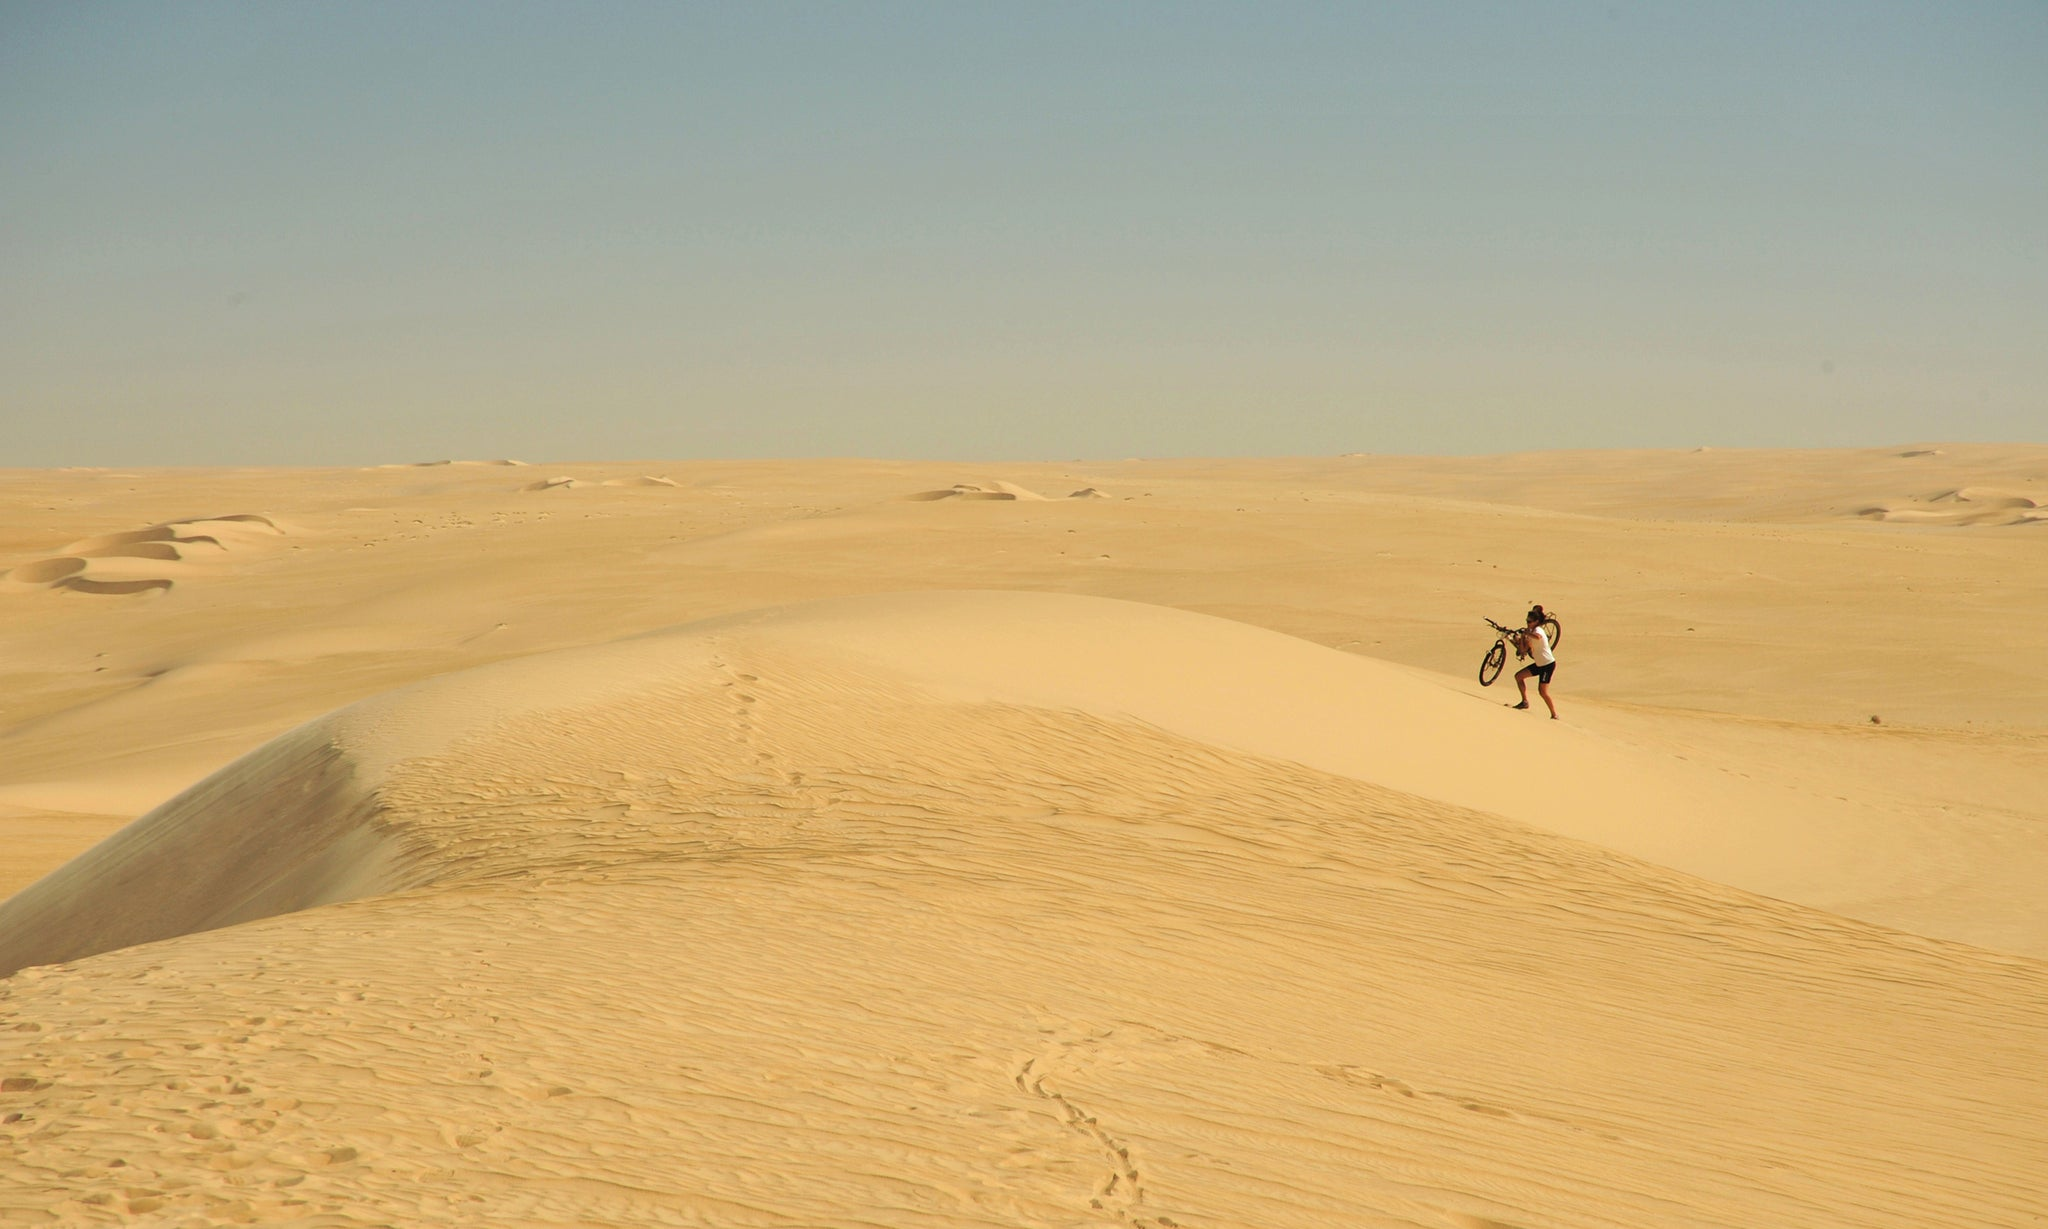 Hiking up the sand dunes